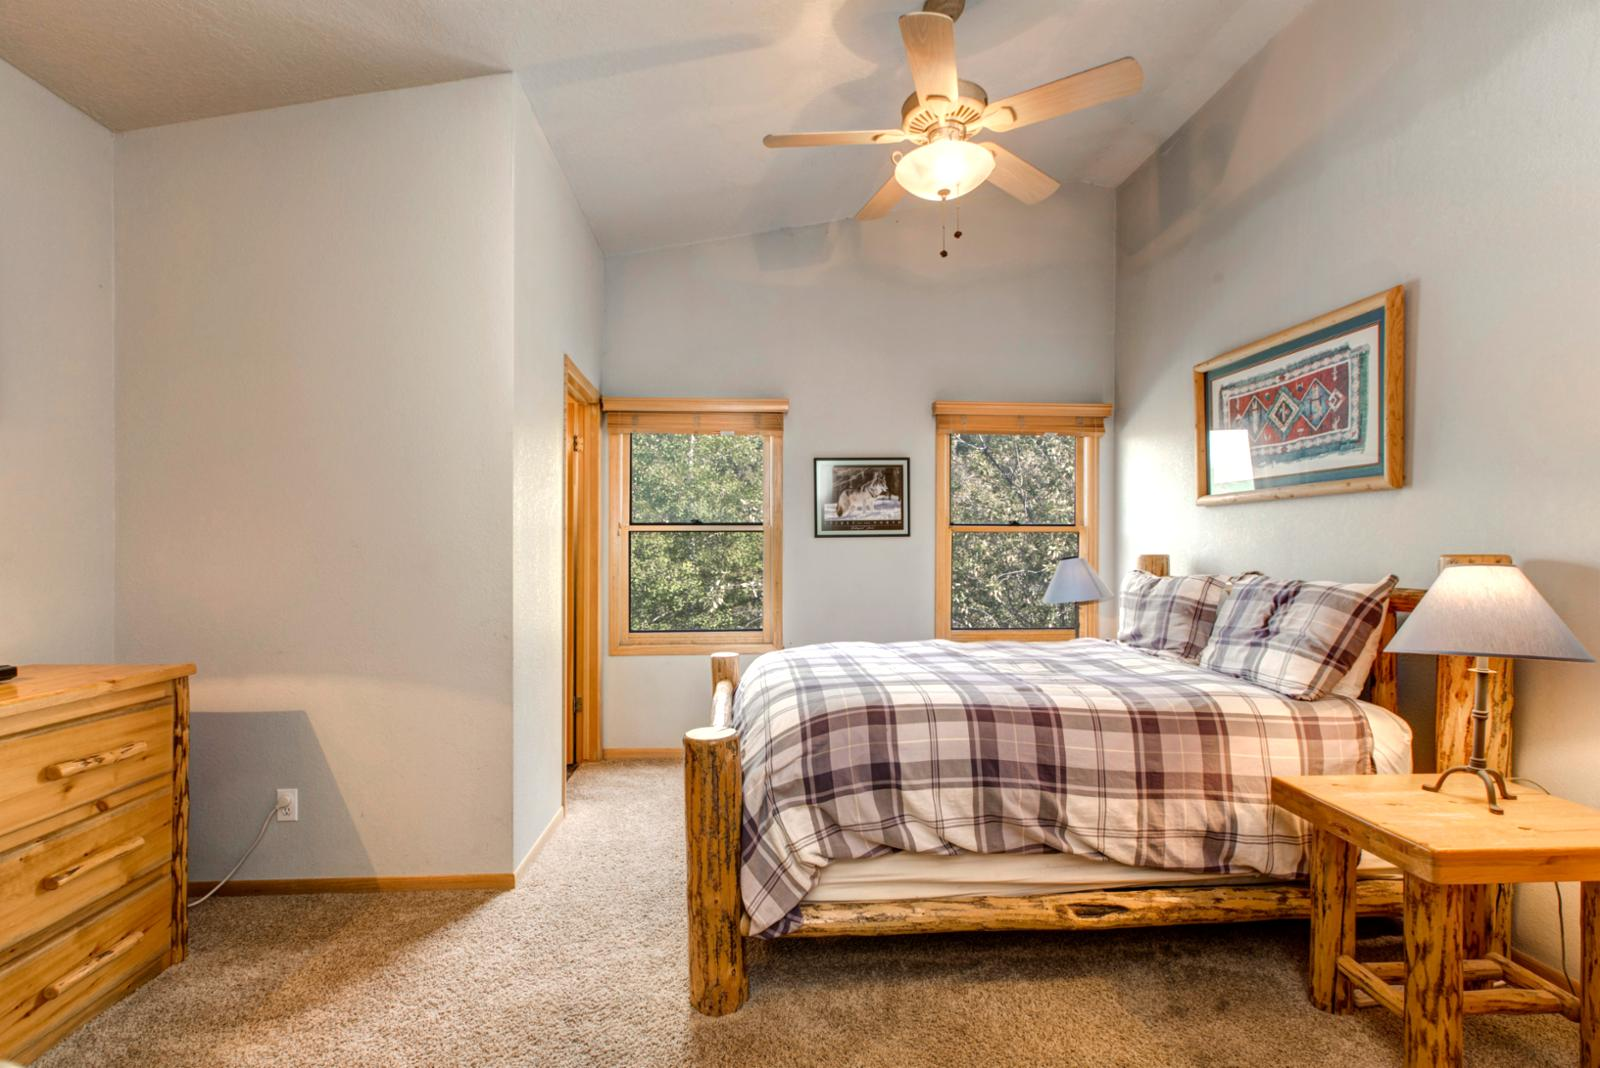 Queen bedroom with en suite and vaulted ceilings to add extra spaciousness